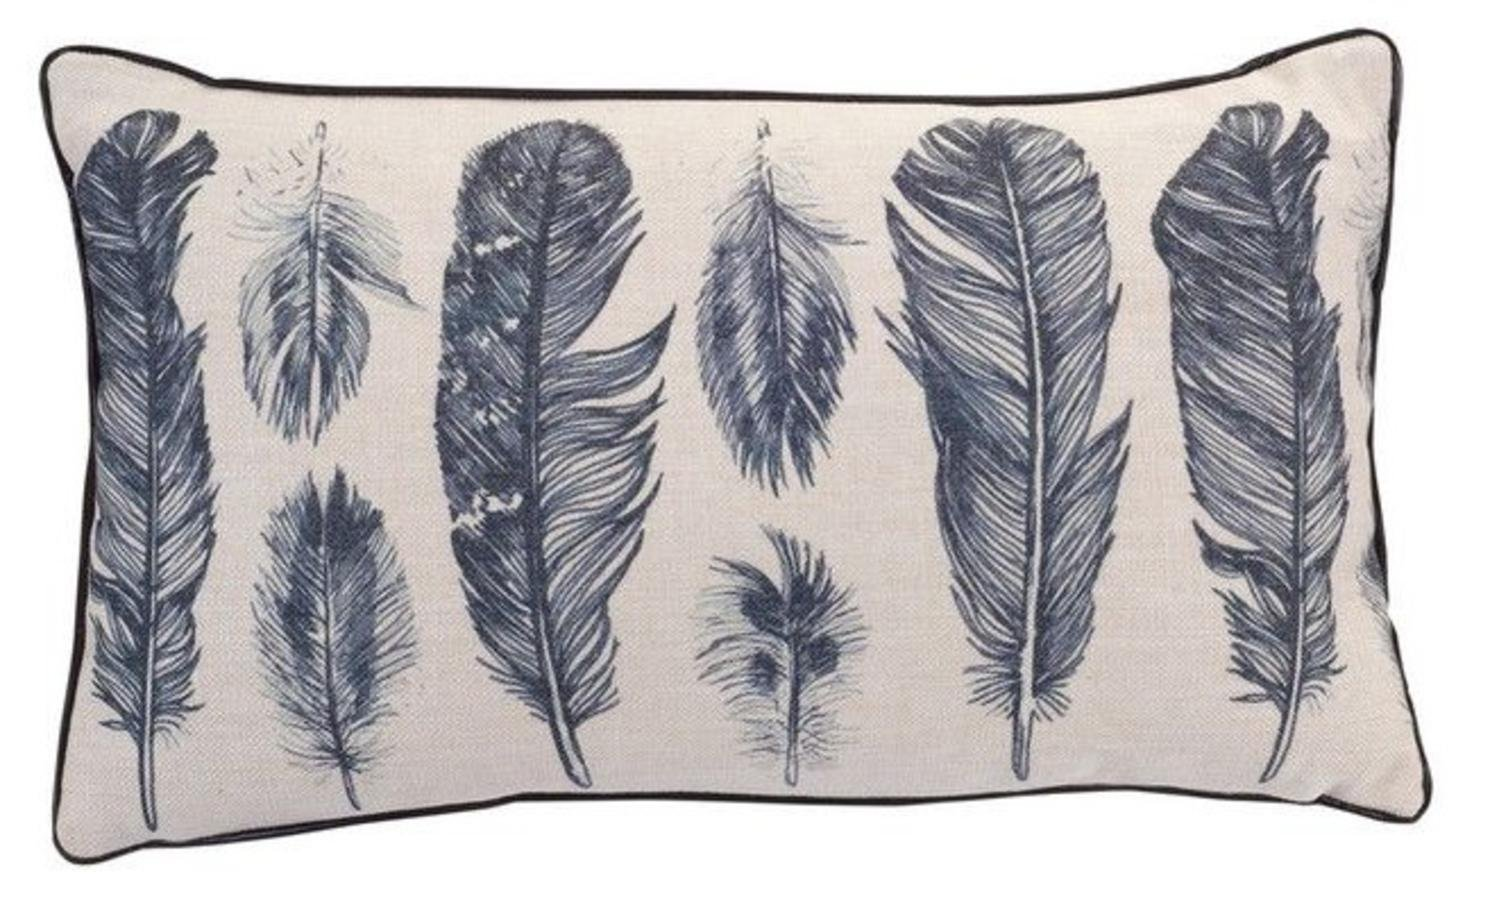 "Pack of 4 Cream and Gray Feather Design Decorative Throw Pillows 18.5""L x 10""H by Melrose"